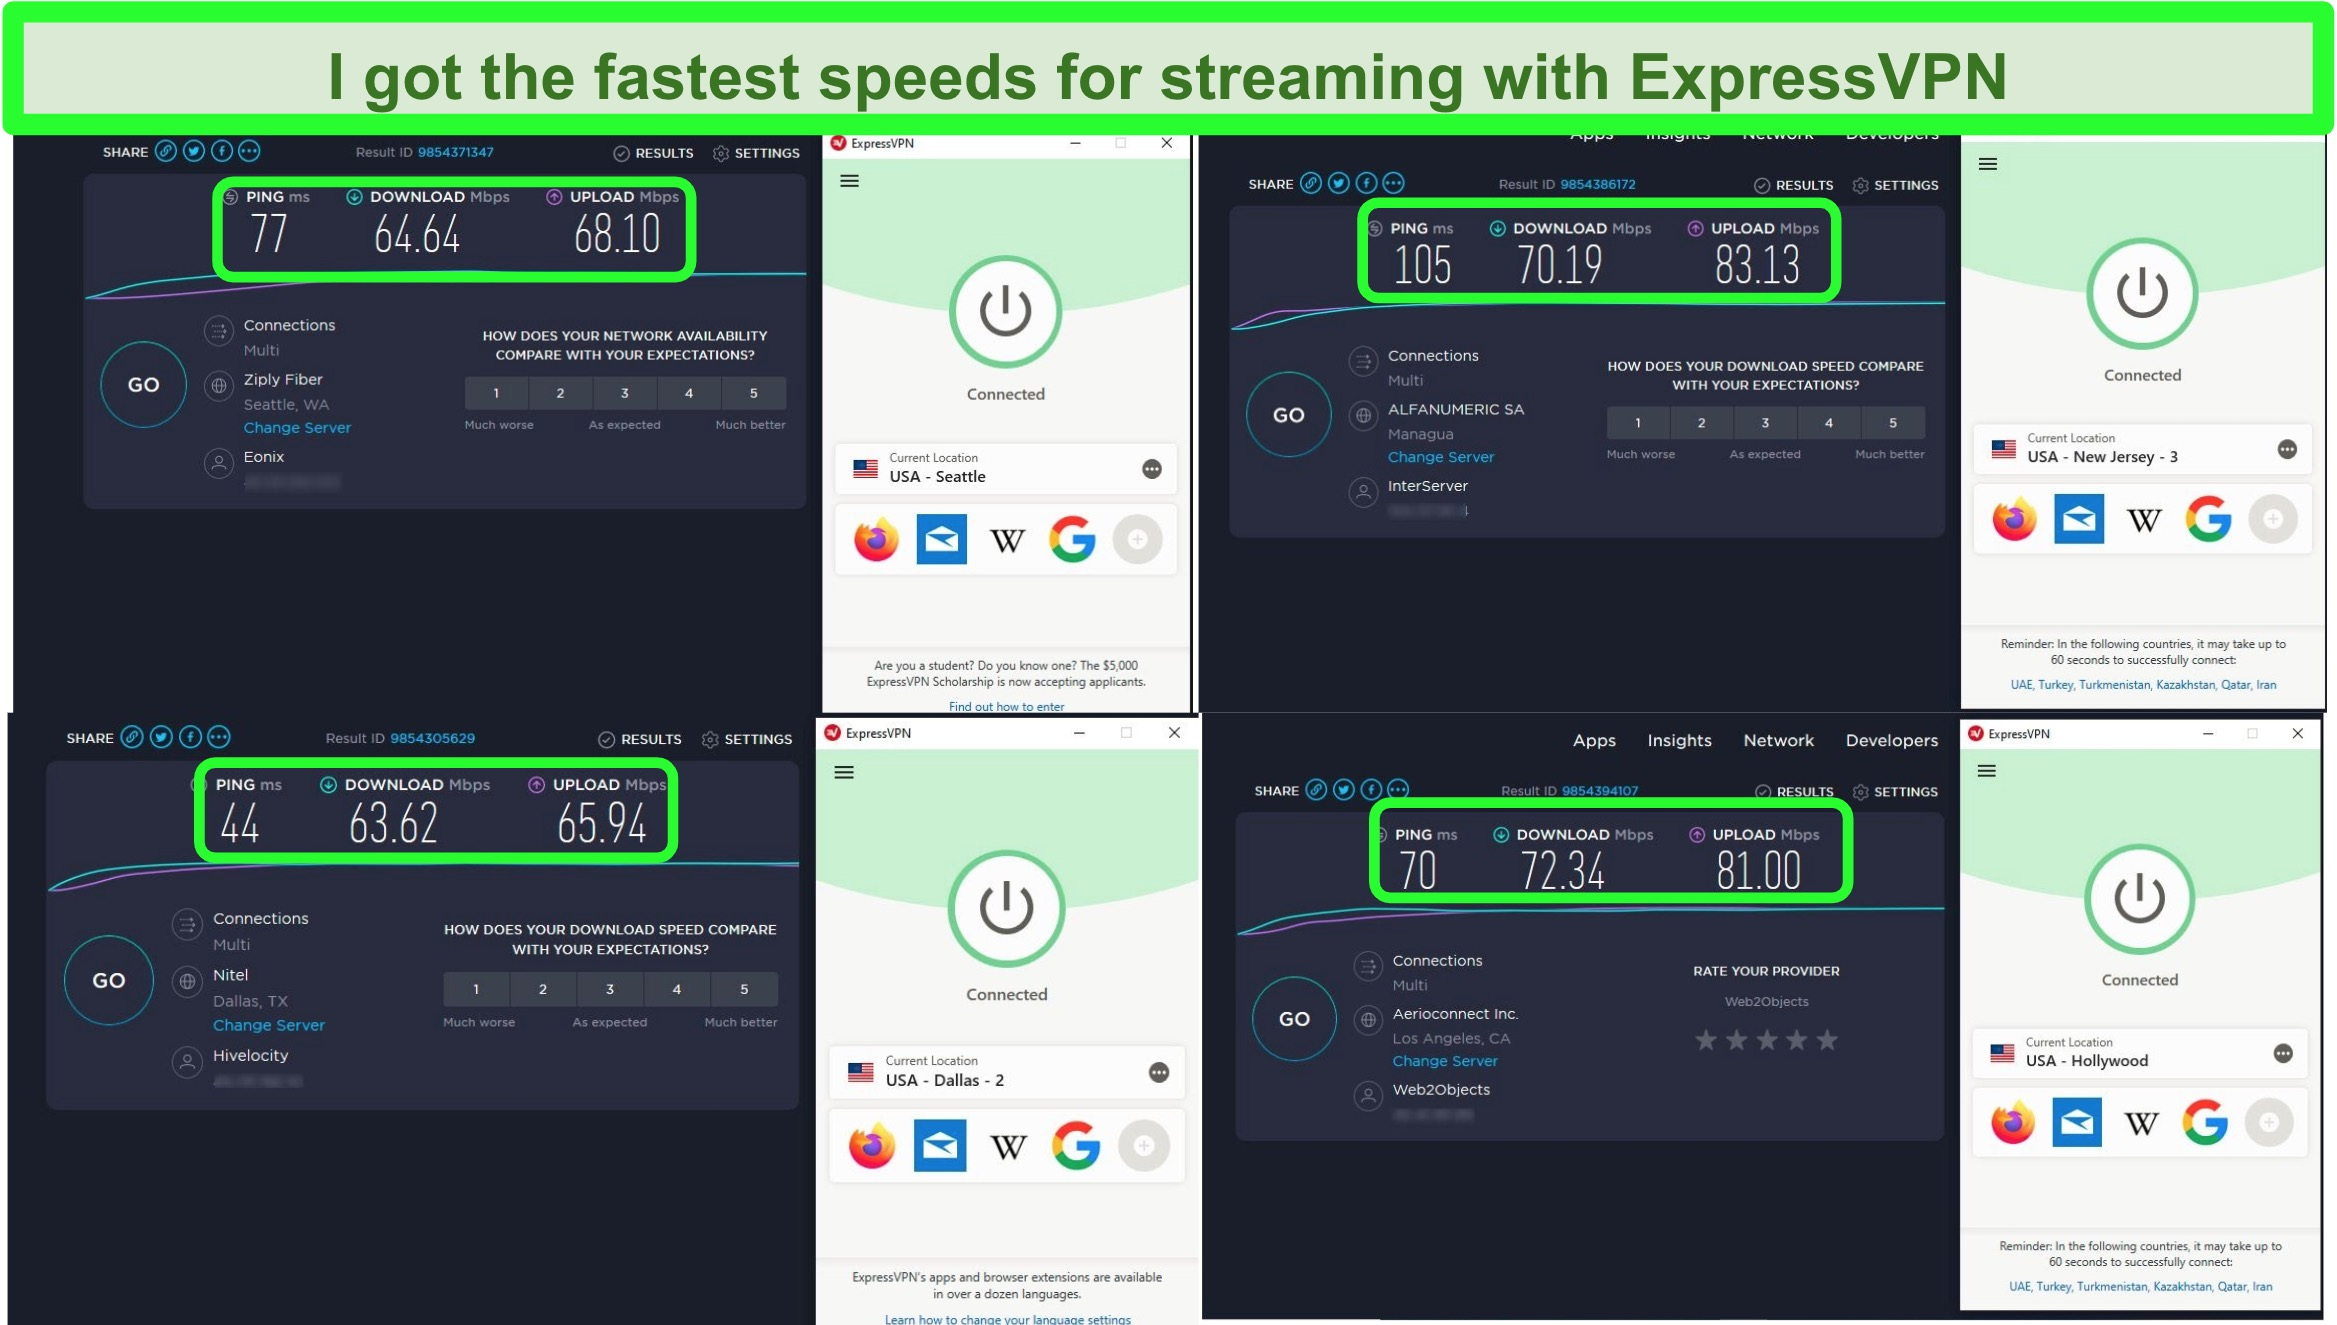 Screenshot of speed tests after connecting to 4 ExpressVPN servers